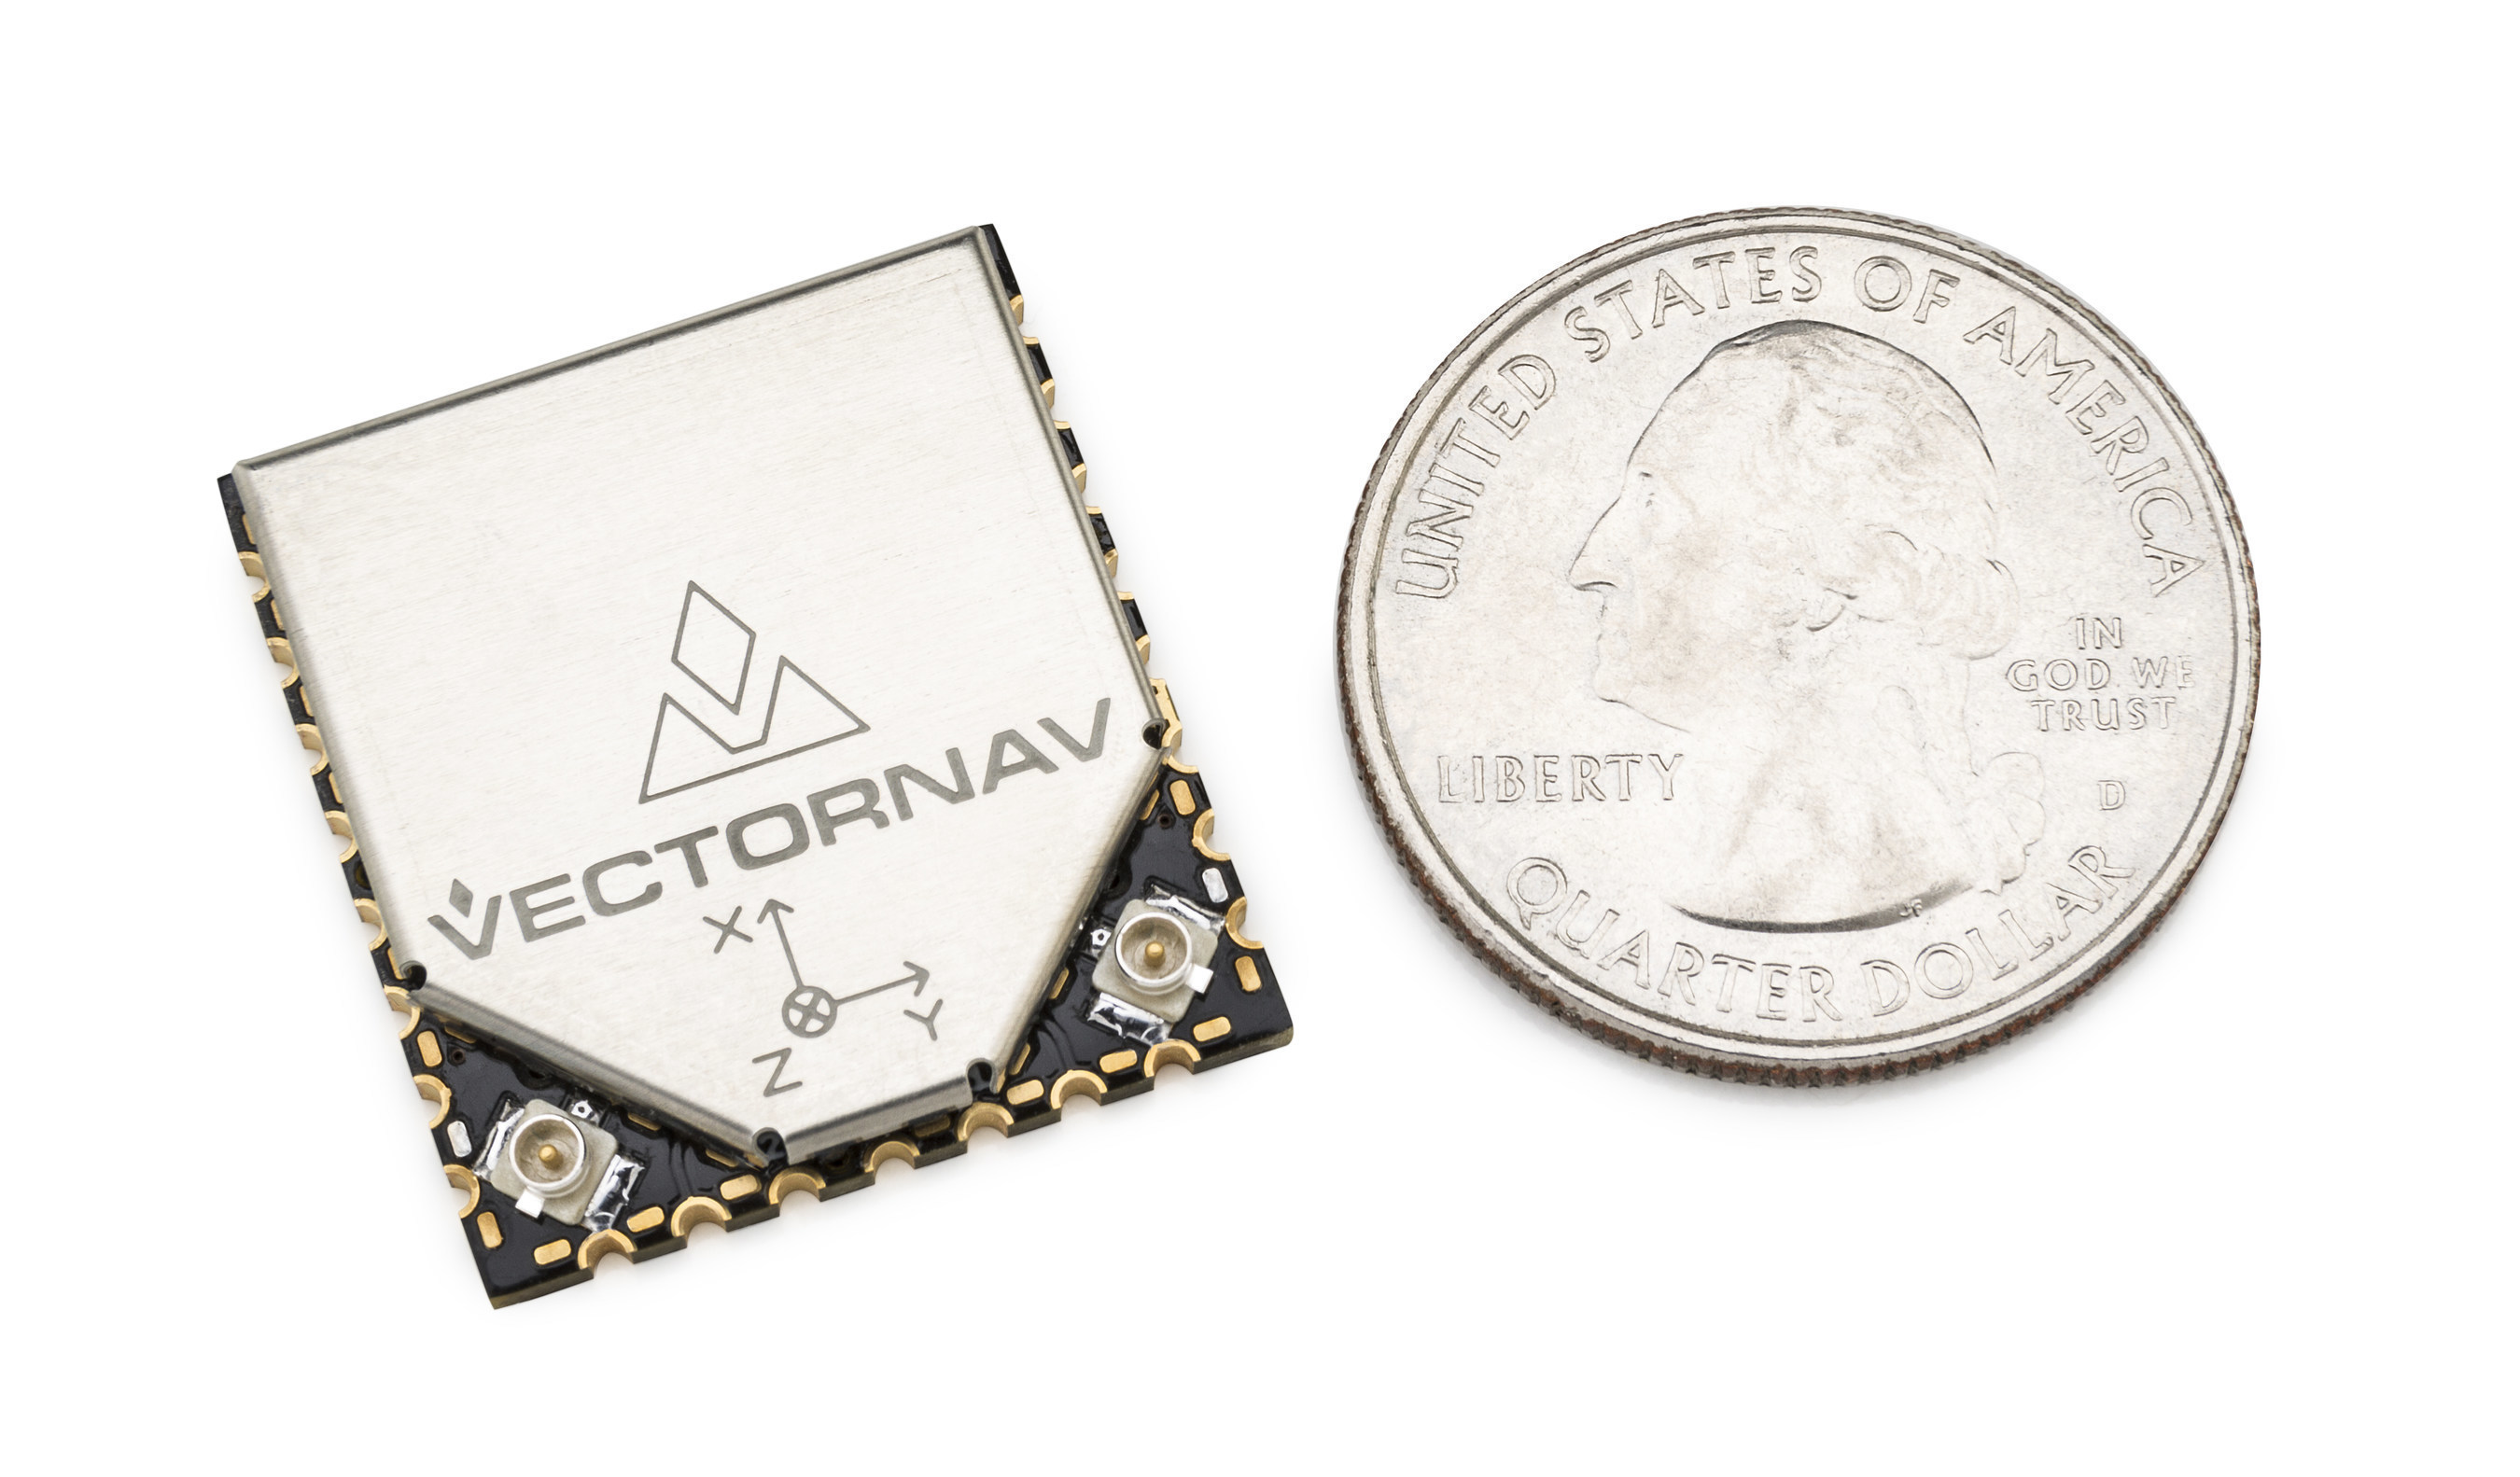 VectorNav Introduces Surface Mount VN-300 Dual Antenna GPS/INS at AUVSI 2015